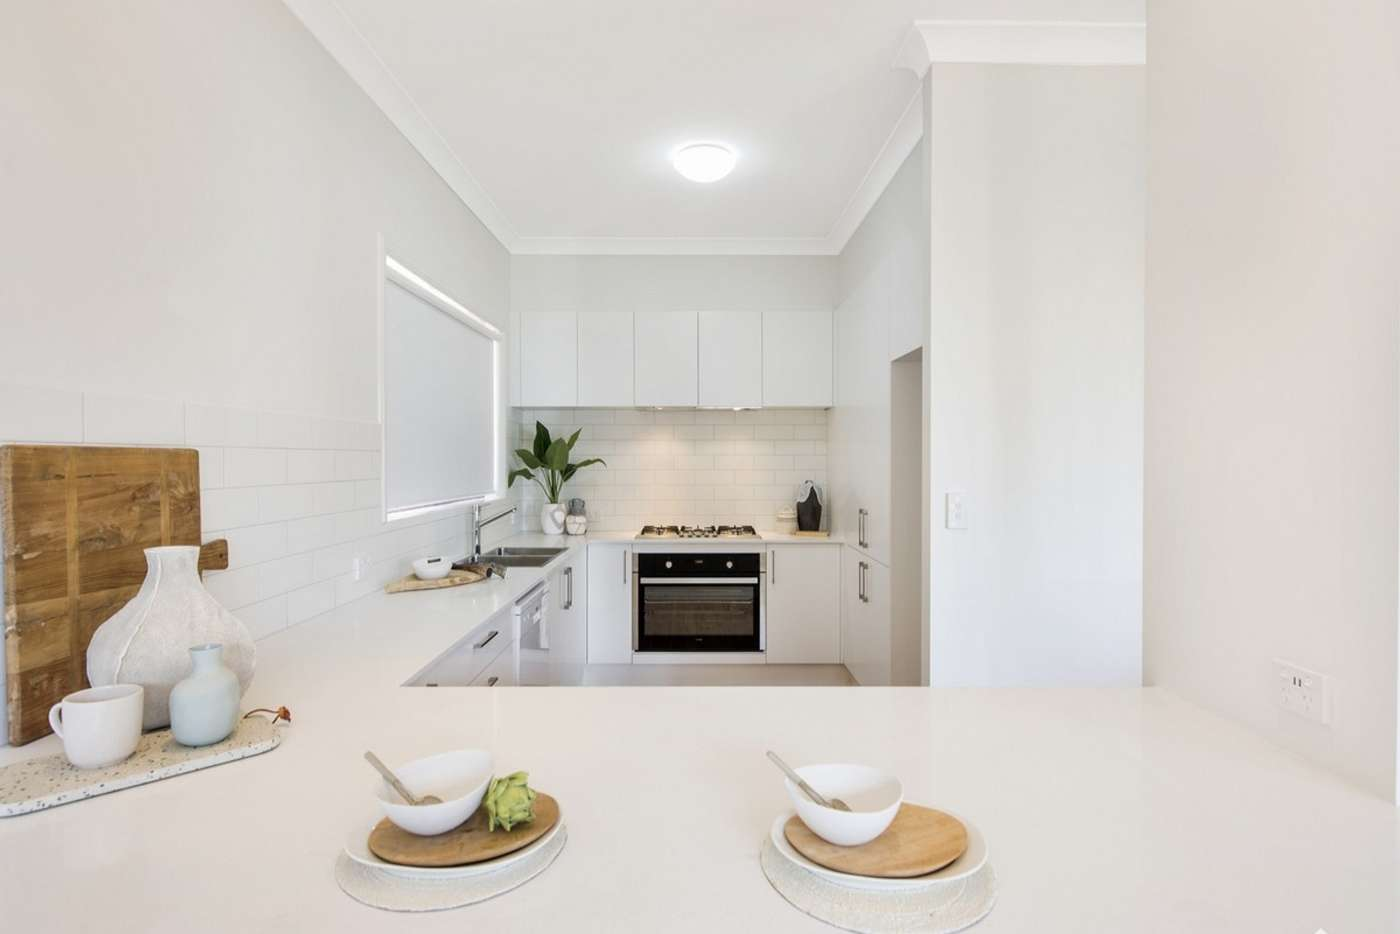 Fifth view of Homely house listing, 49 Lakedge Avenue, Berkeley Vale NSW 2261